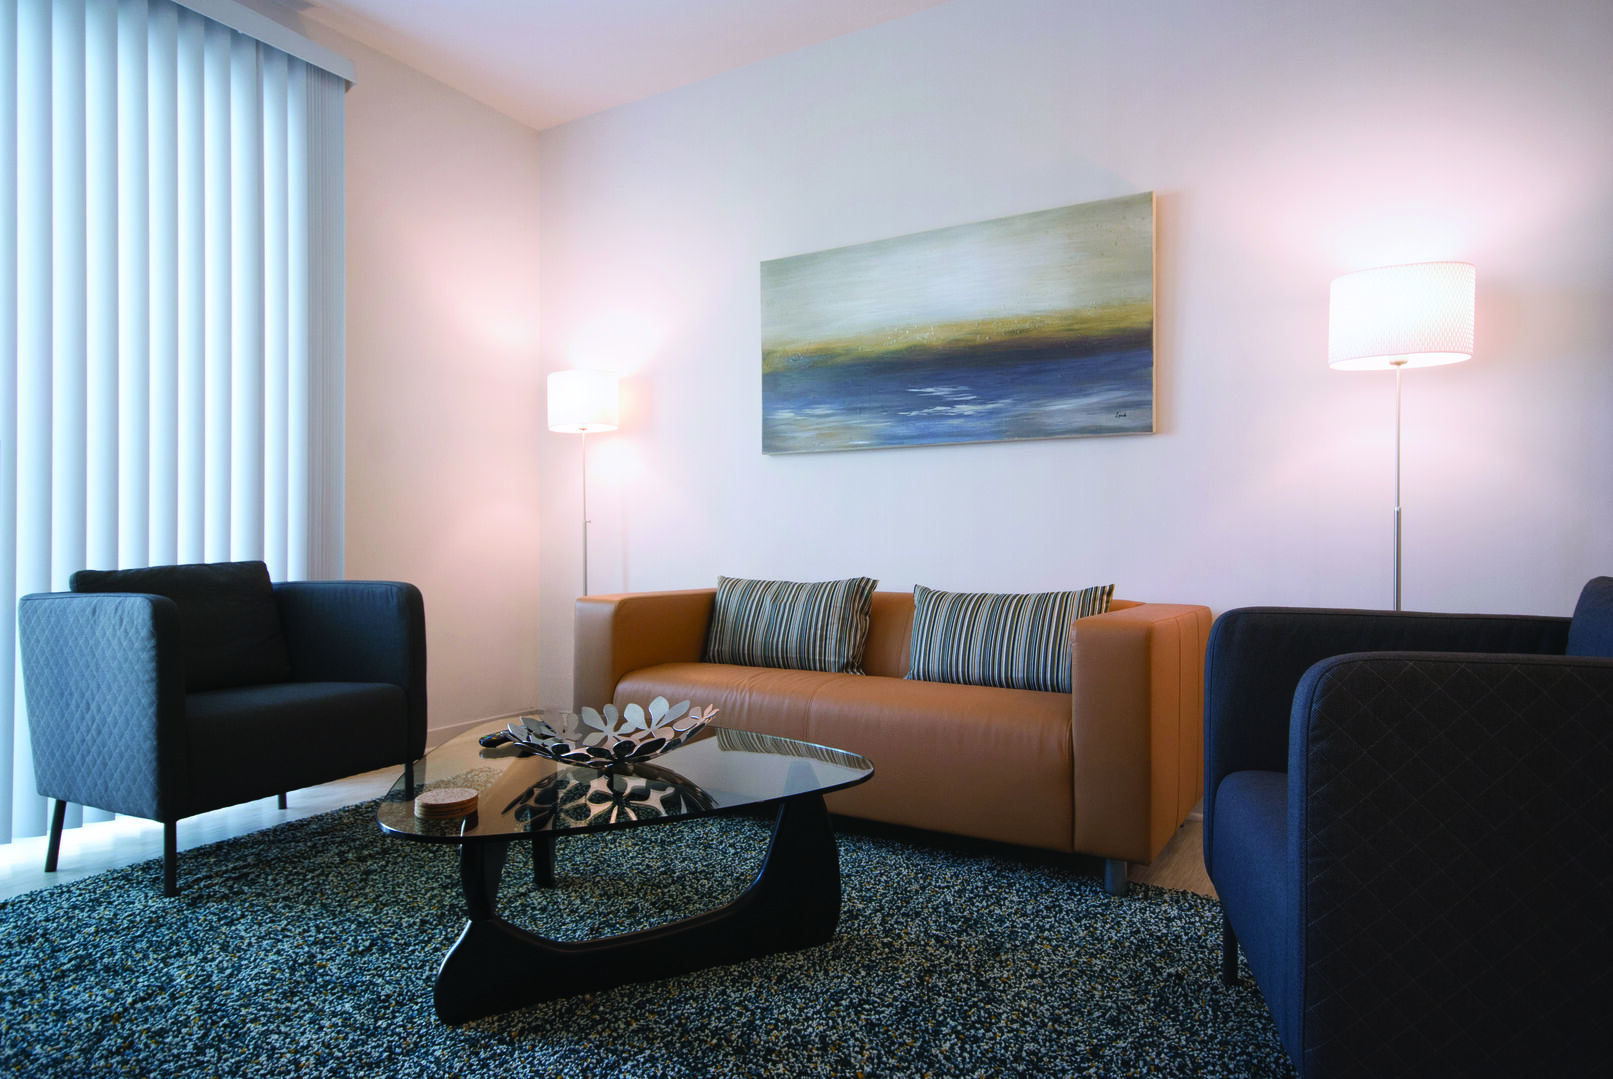 Furnished Living Room with Modern Interior Design - Corporate Apartments - 1-Bedroom Spectacular Suites